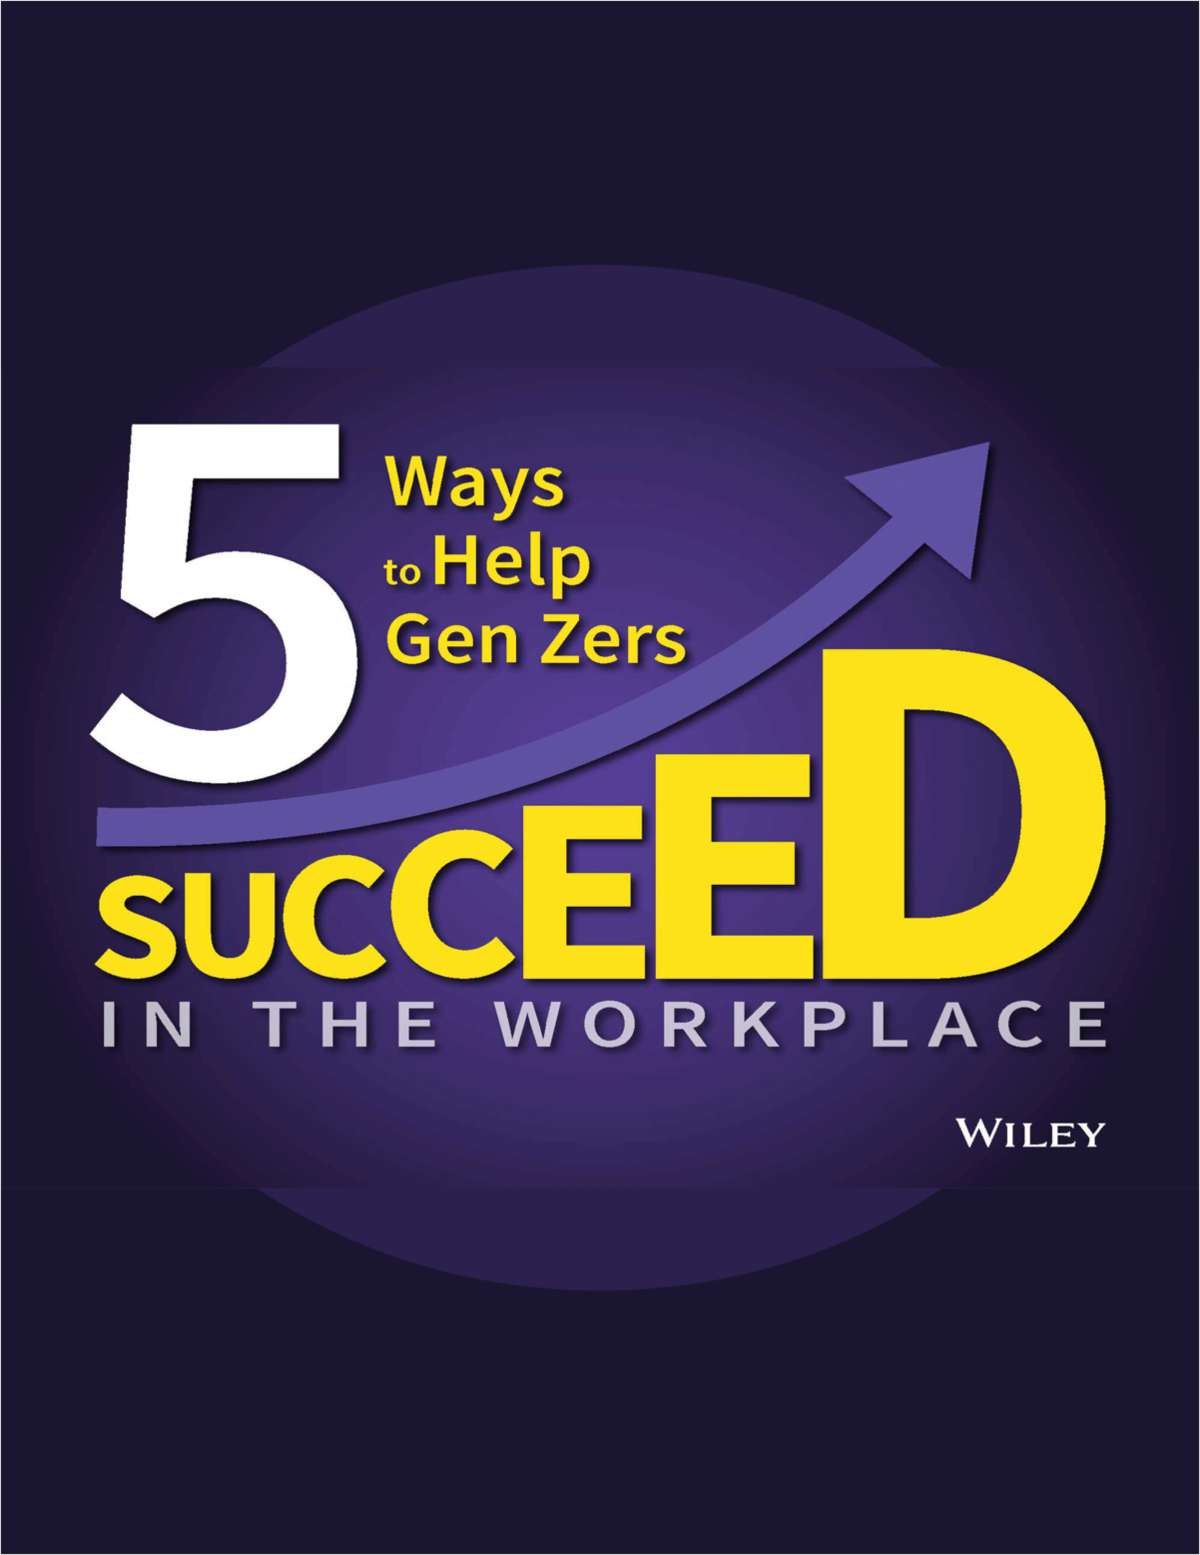 5 Ways to Help Gen Zers Succeed in the Workplace